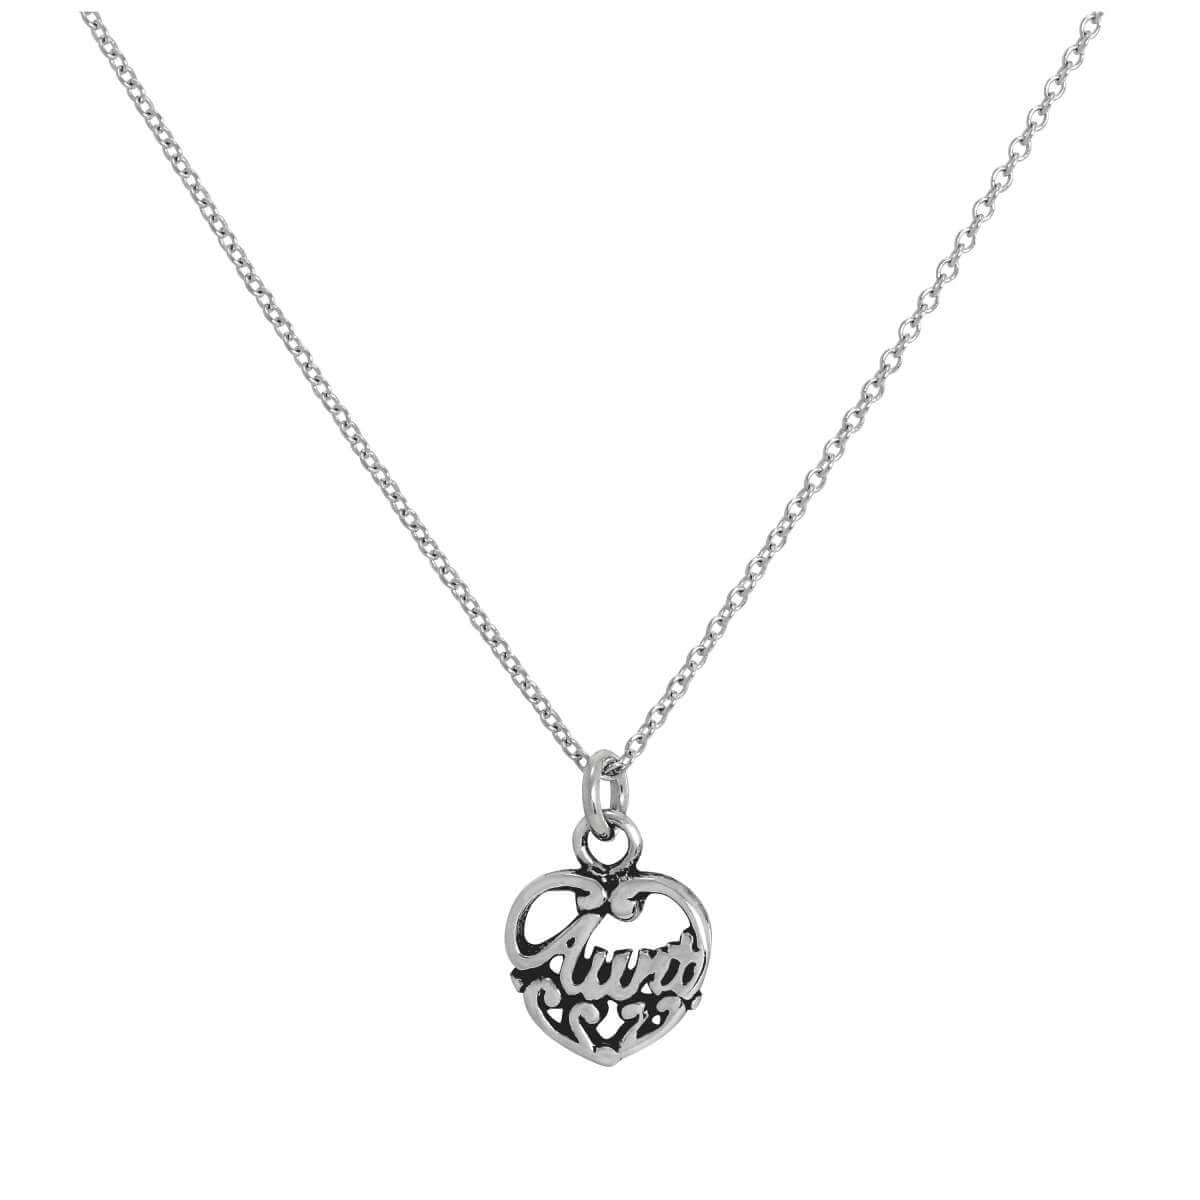 Sterling Silver Filigree Aunt Love Heart Pendant Necklace 16 - 32 Inches